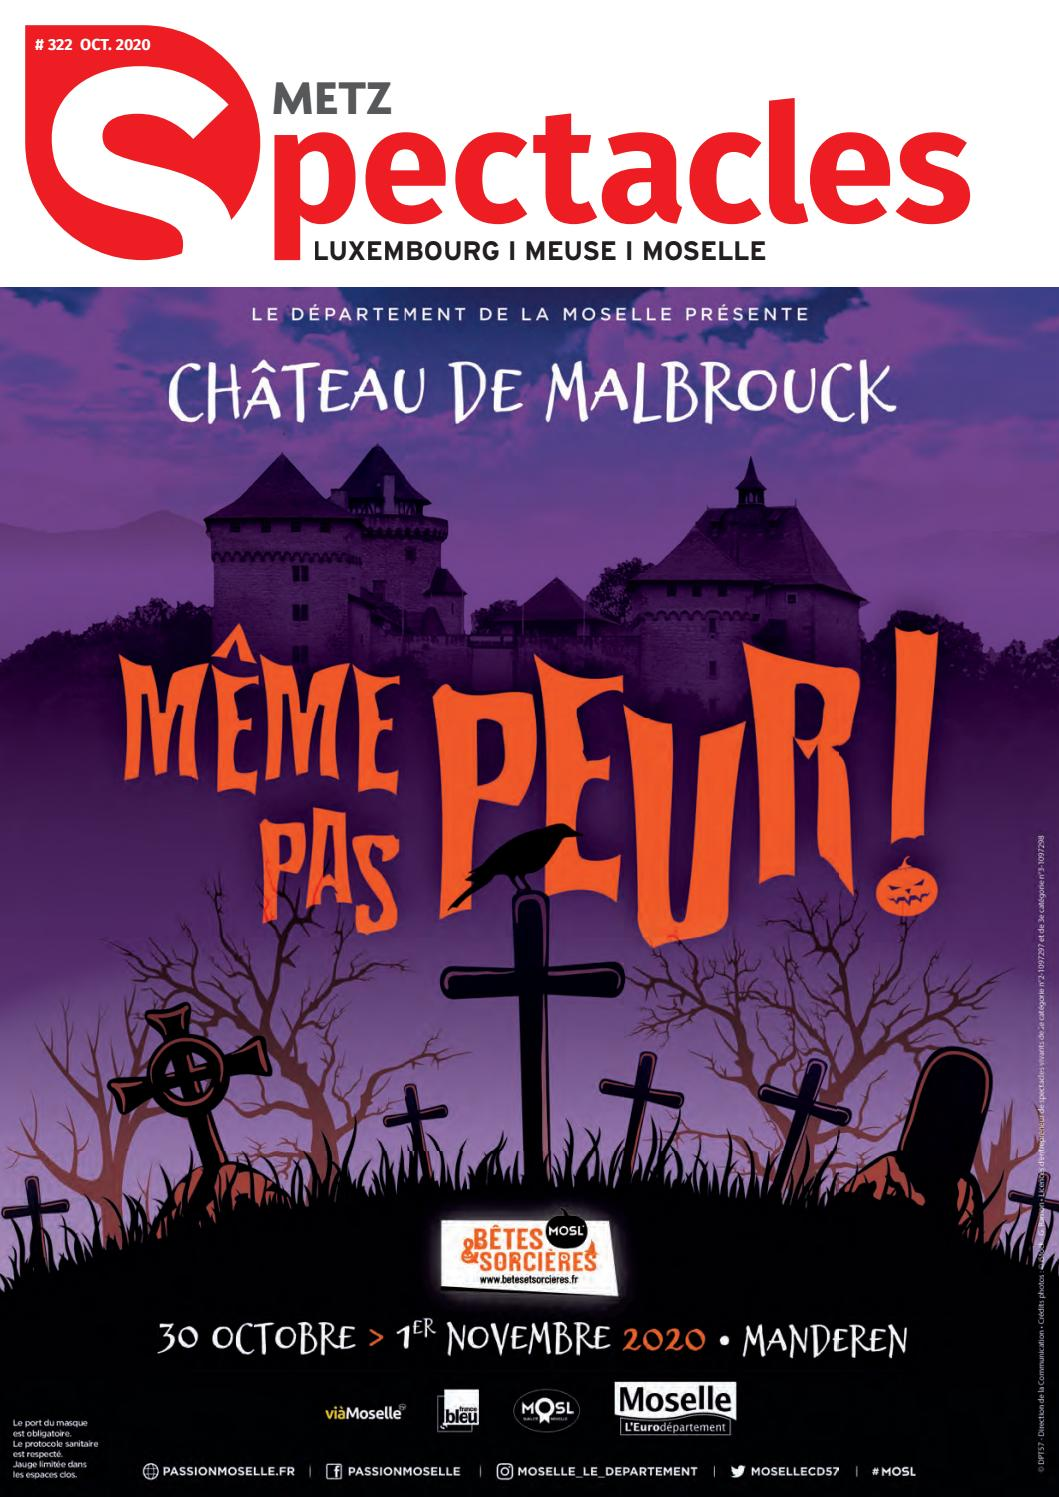 Spectacles Publications Metz N 322 Octobre 2020 By Spectacles Publications Issuu